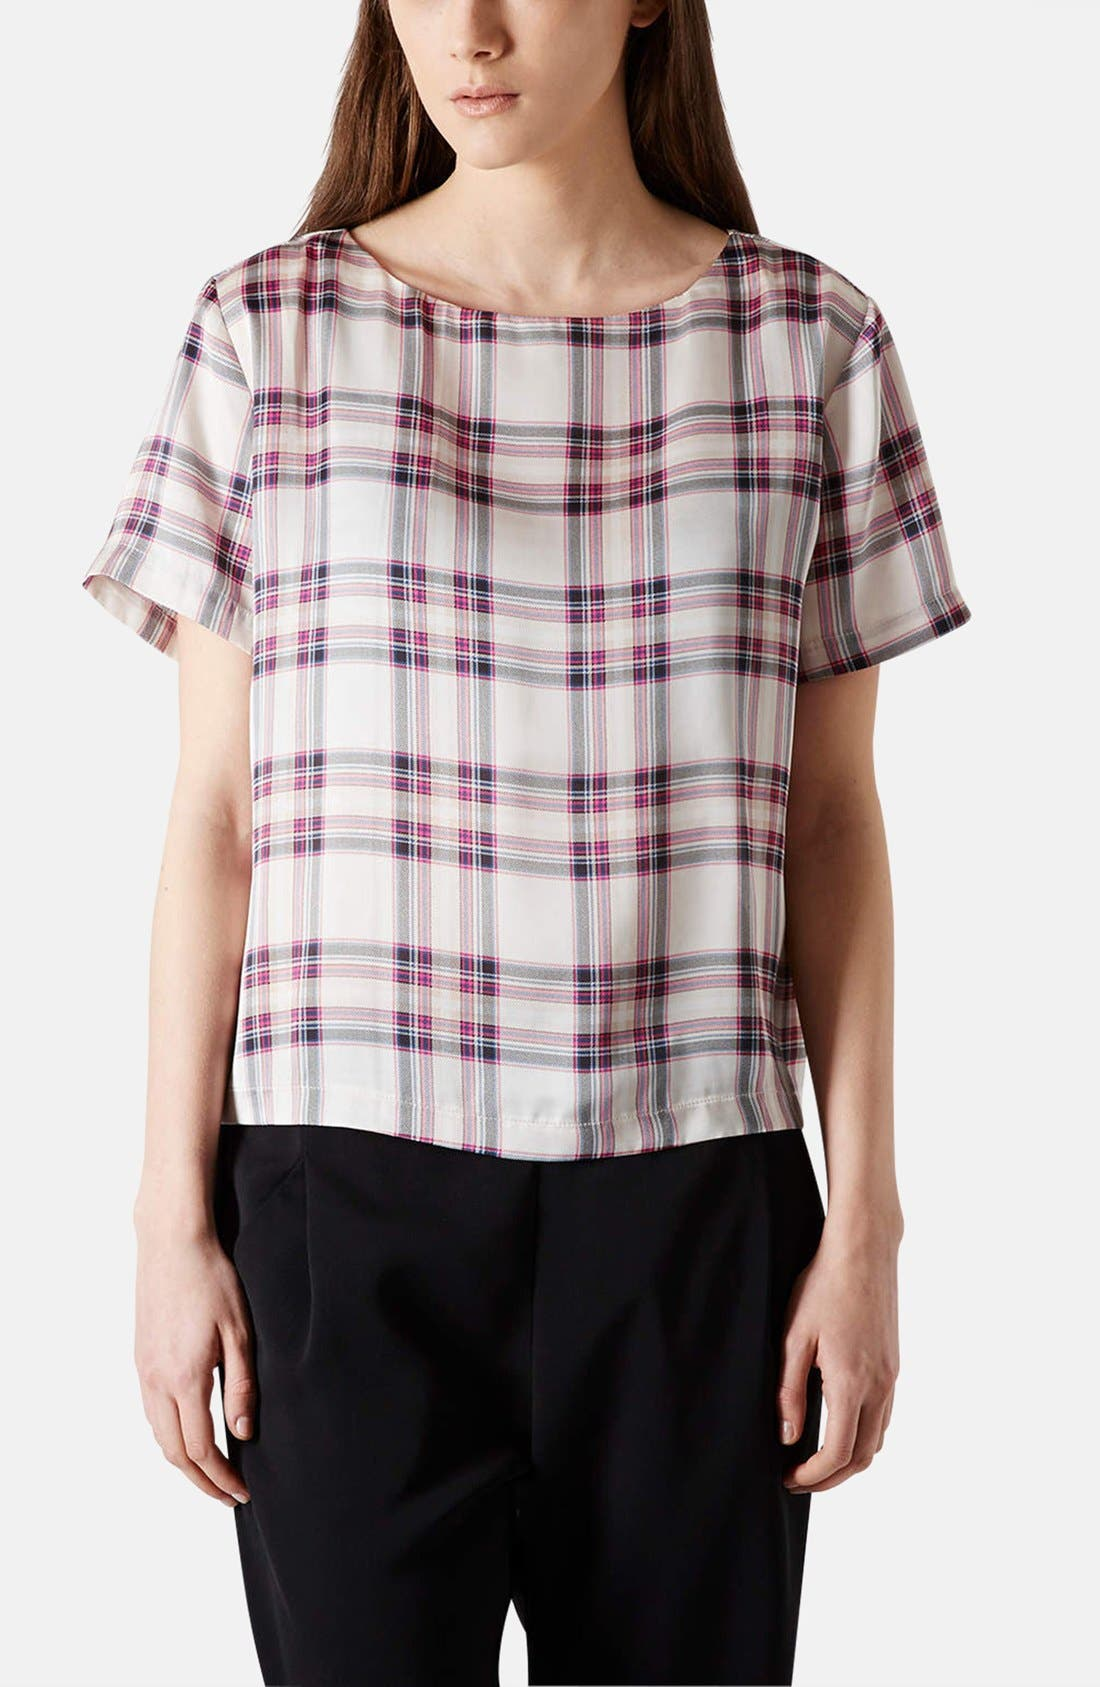 Alternate Image 1 Selected - Topshop 'Summer Check' Print Tee